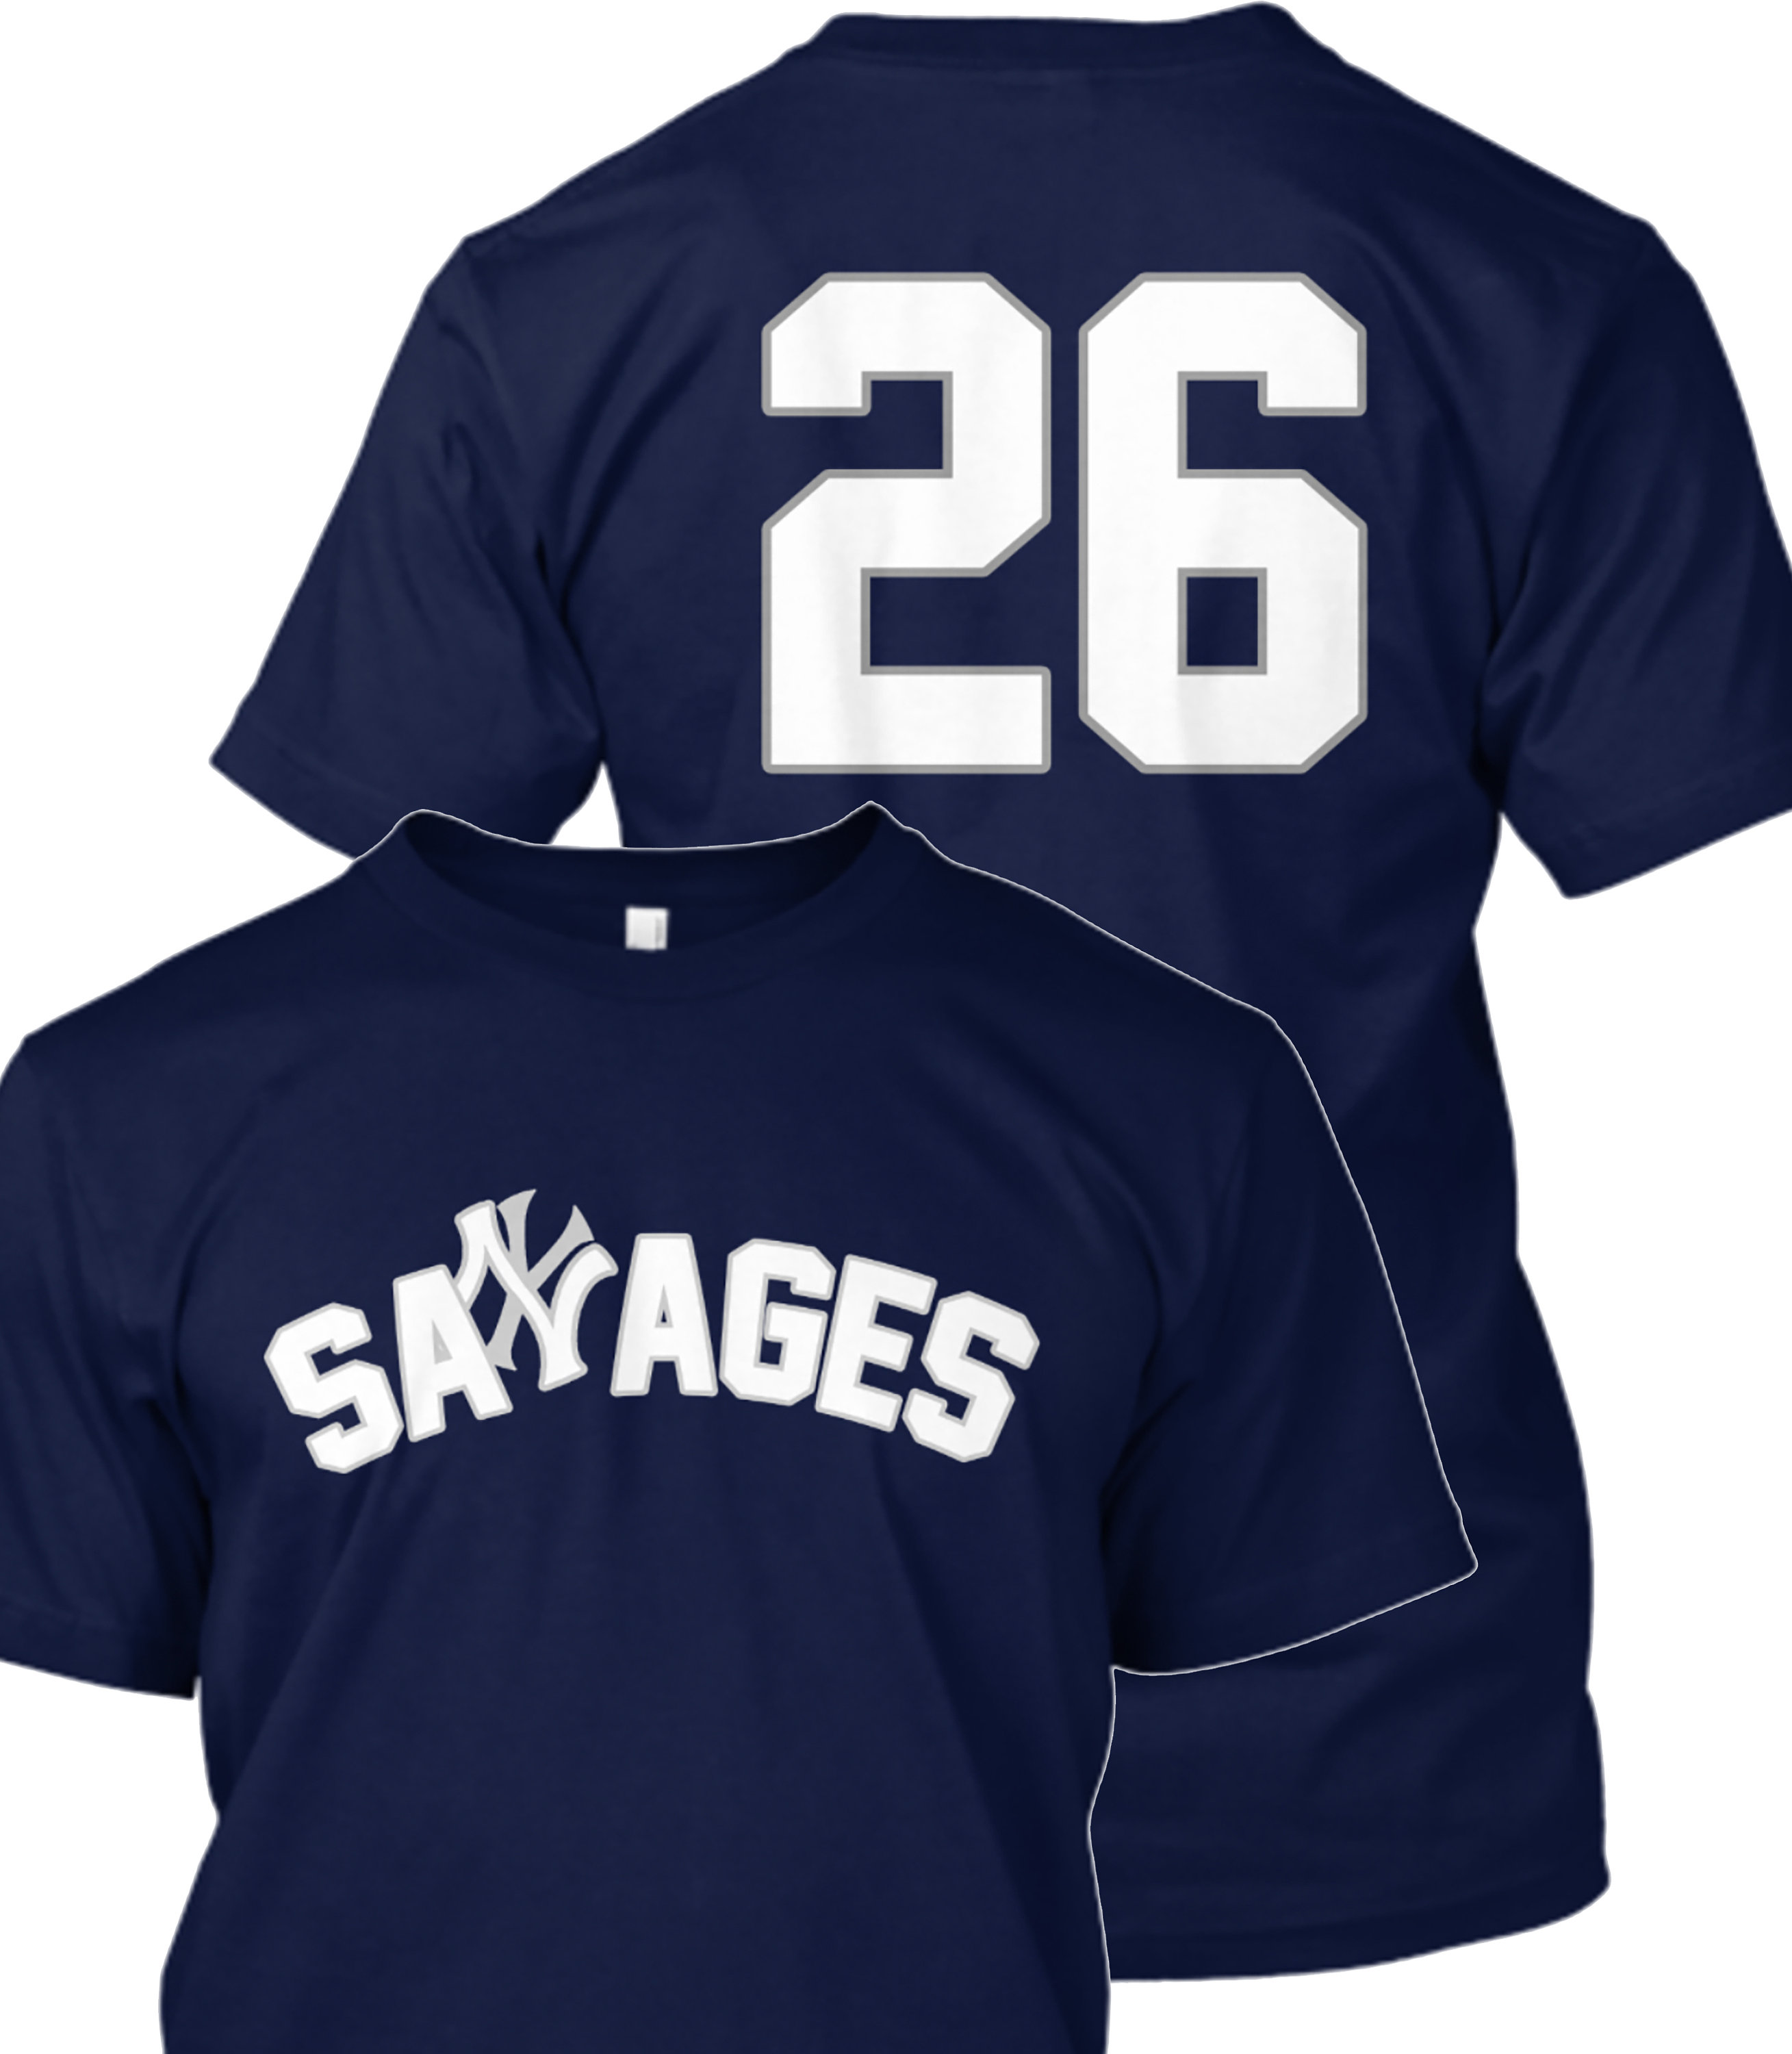 quality design 2bc44 f17f7 Yankees Savages T-Shirt - Yankees Shirt - Yankees Tshirt - Aaron Boone  Savages - Savages in the Box Shirt